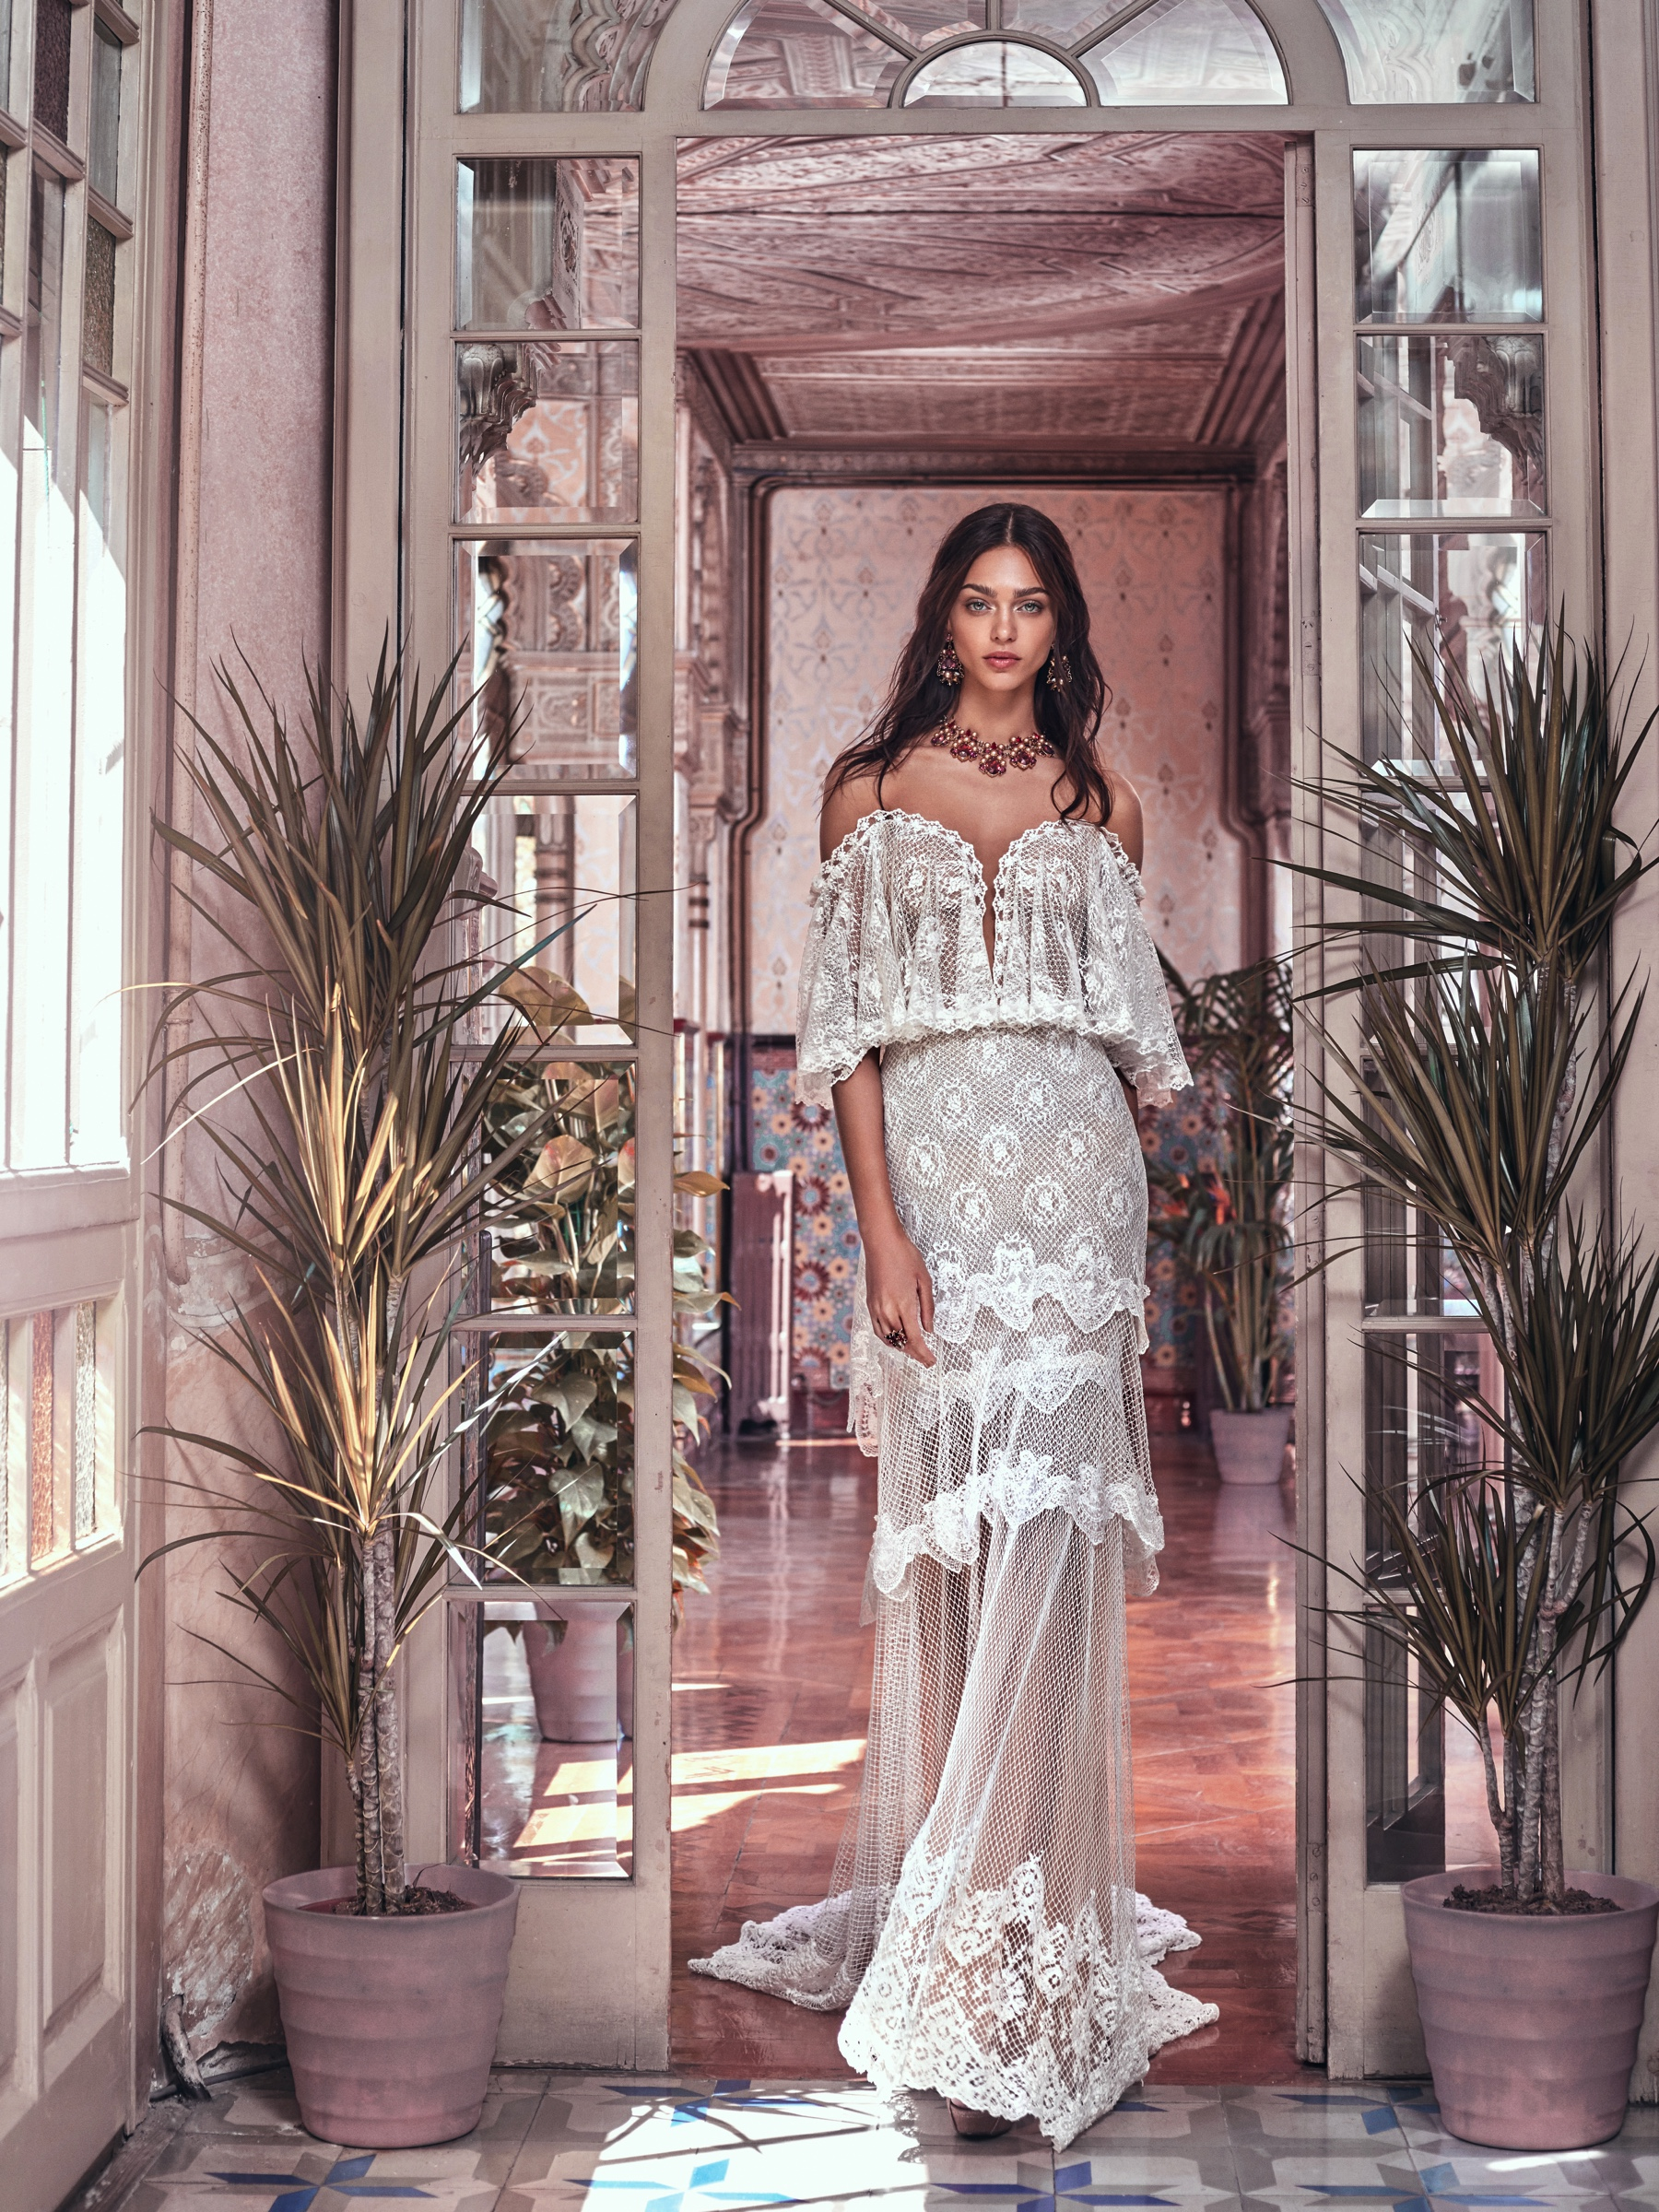 LIZZY WEDDING GOWN GALIA LAHAV 2018